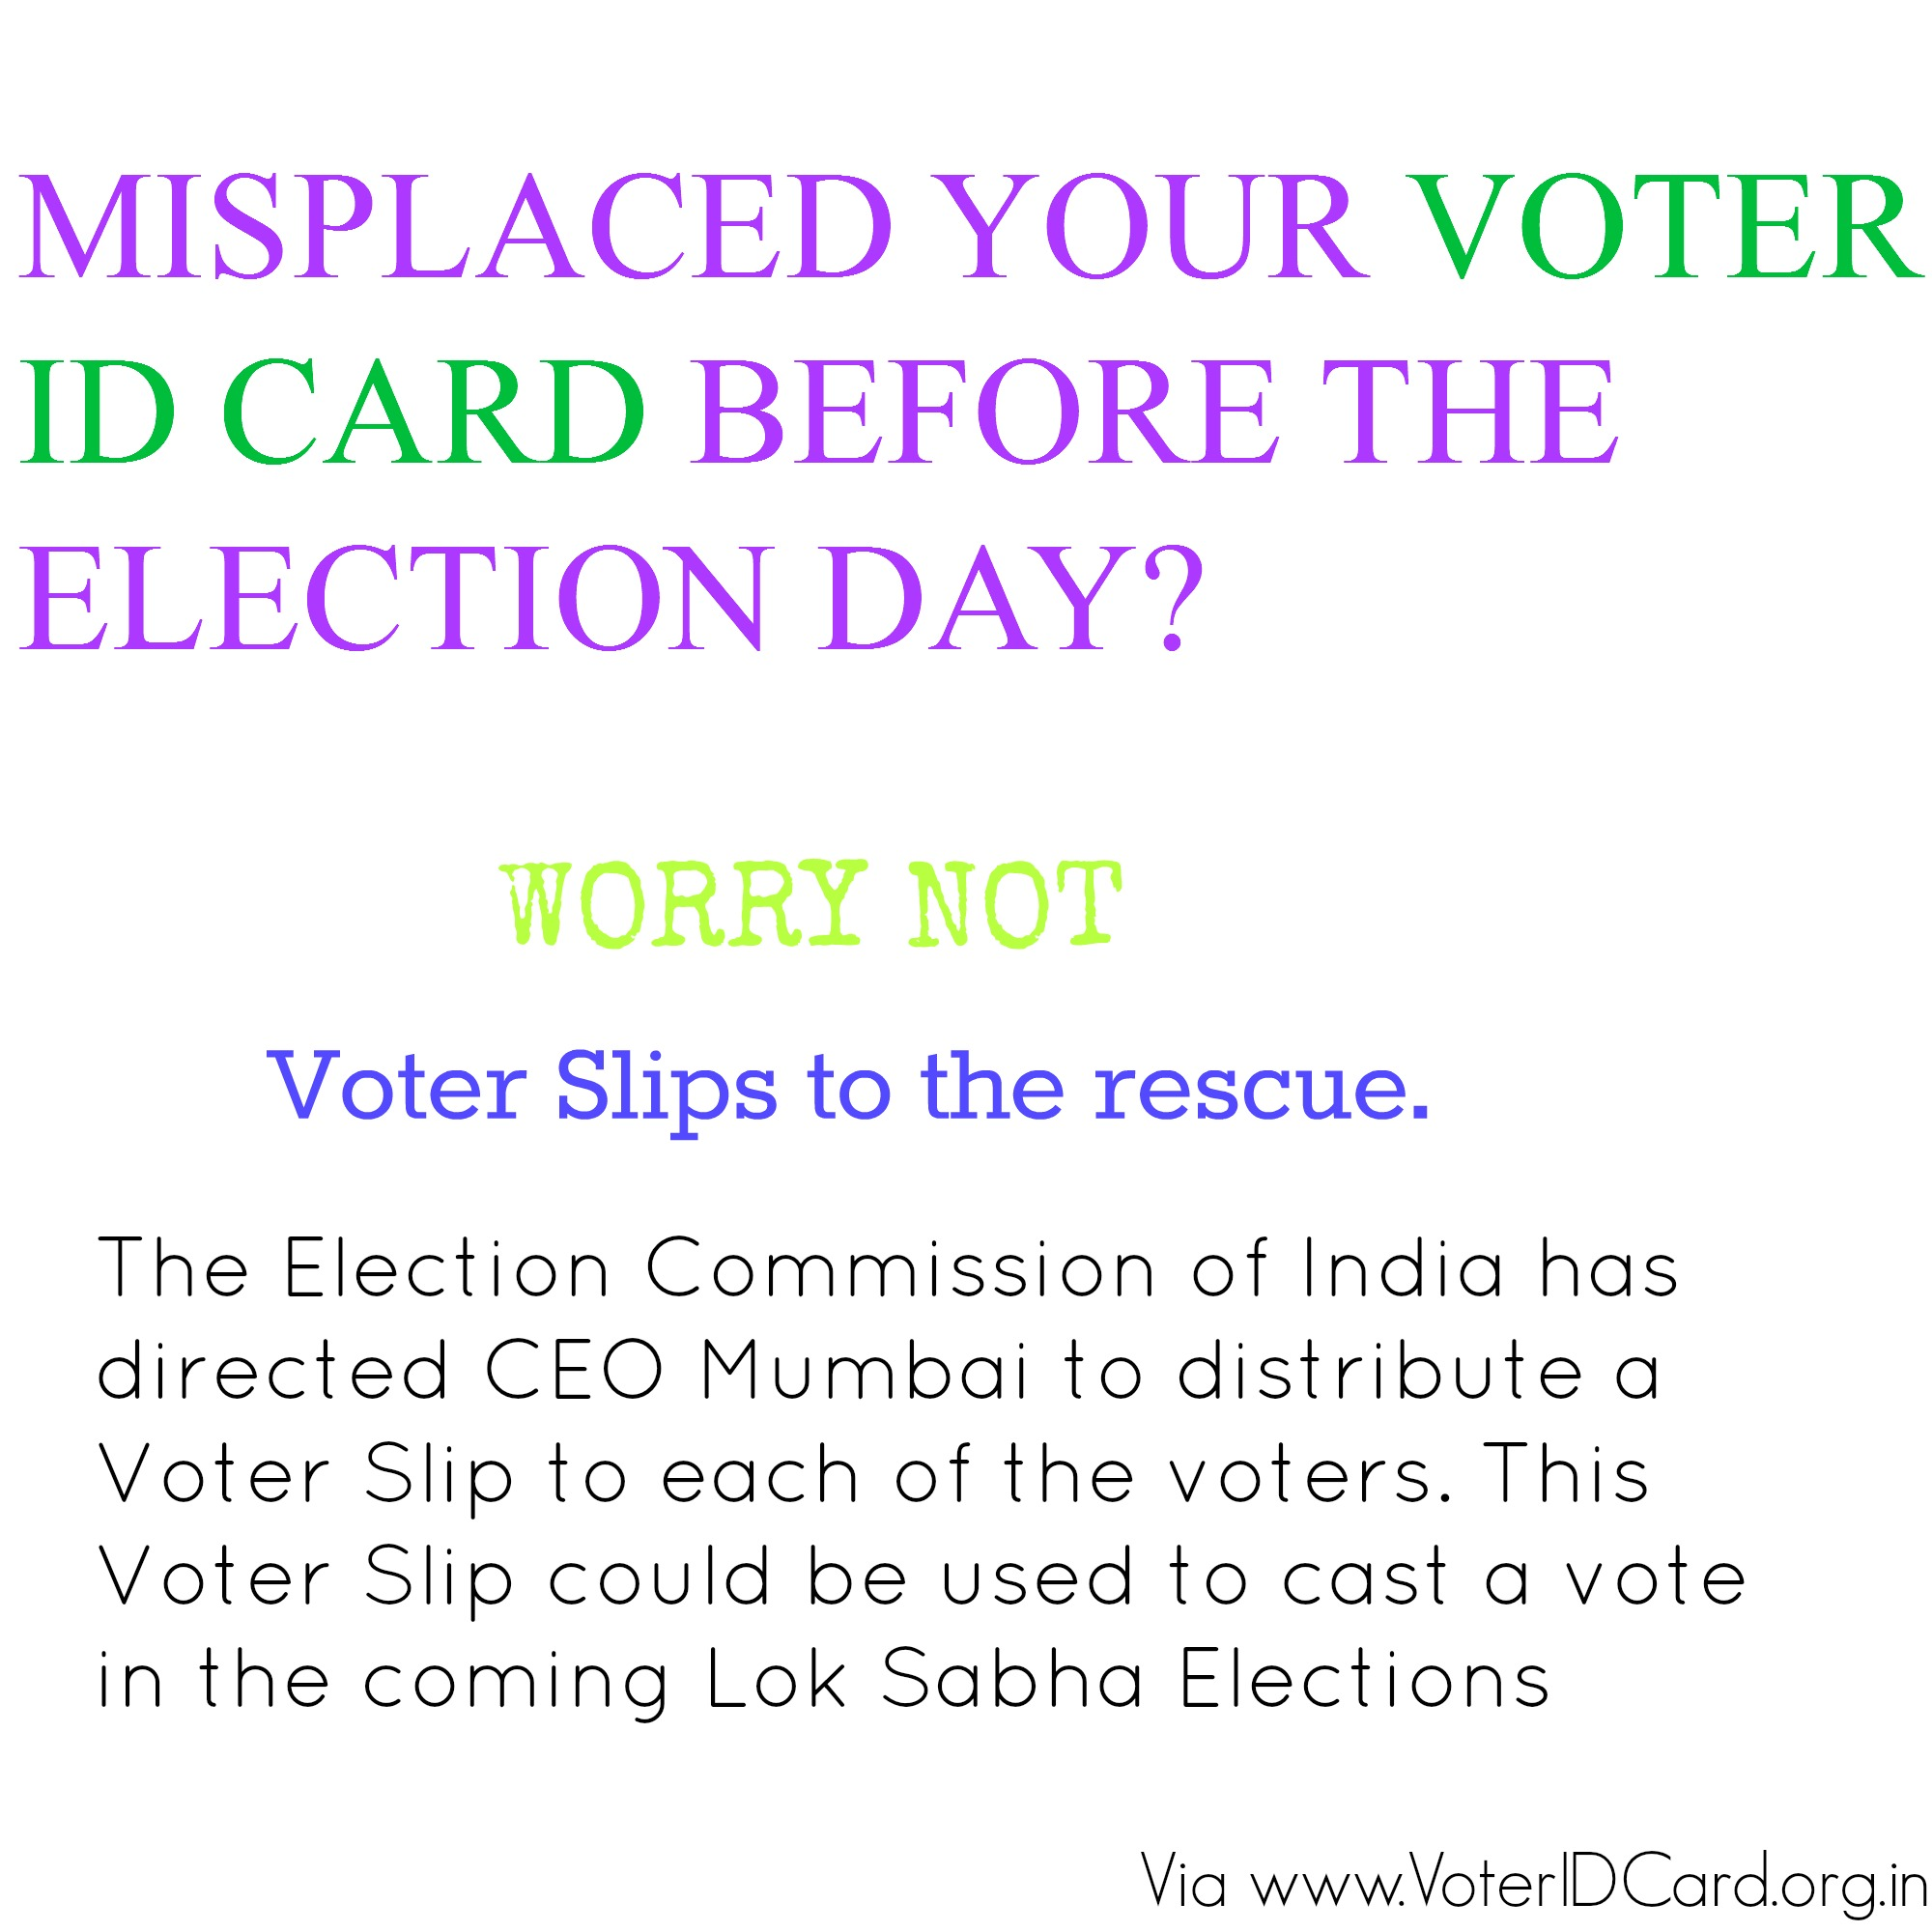 Election Commission of India instructs CEO Mumbai to issue Voter Slips to the voters for the Lok Sabha Elections